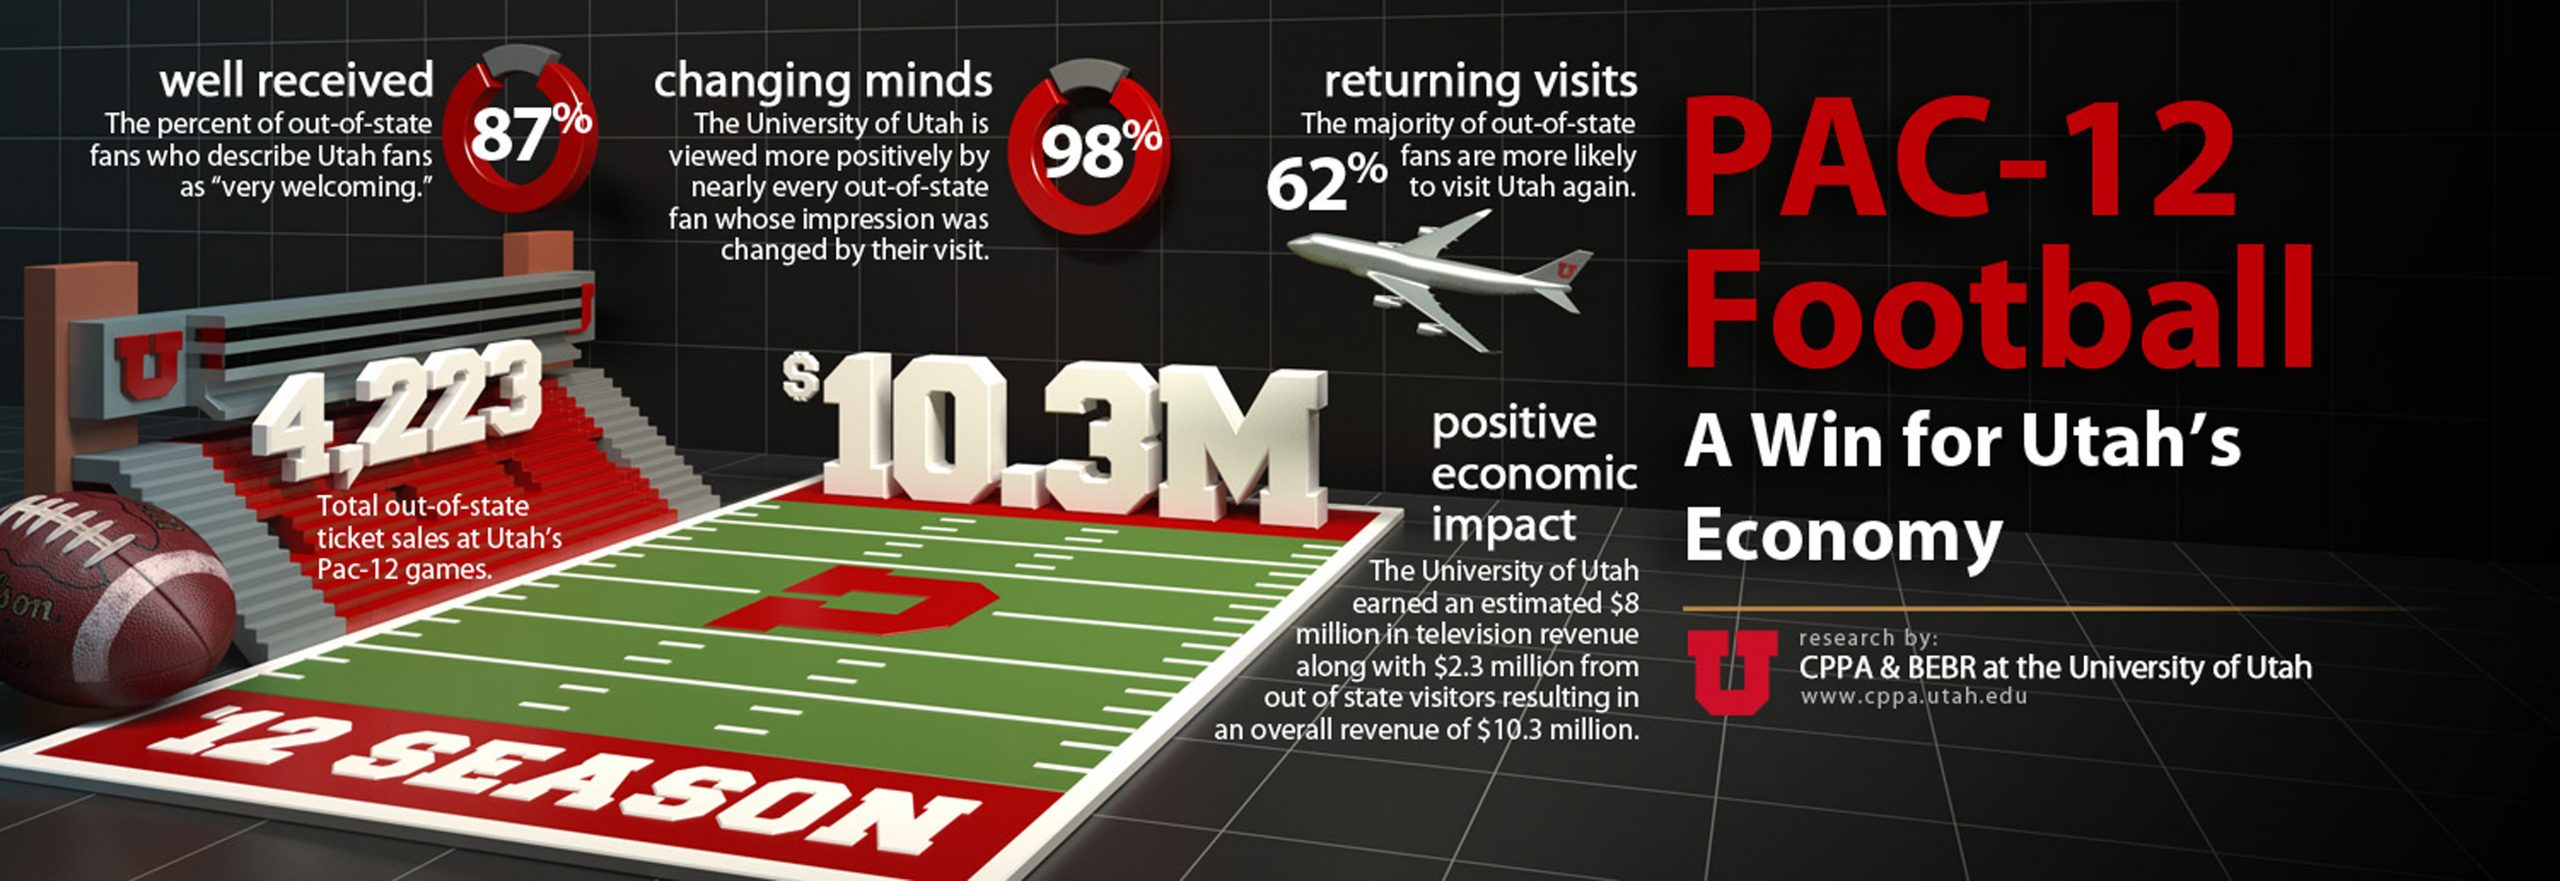 8 20 13 Pac-12 Infographic